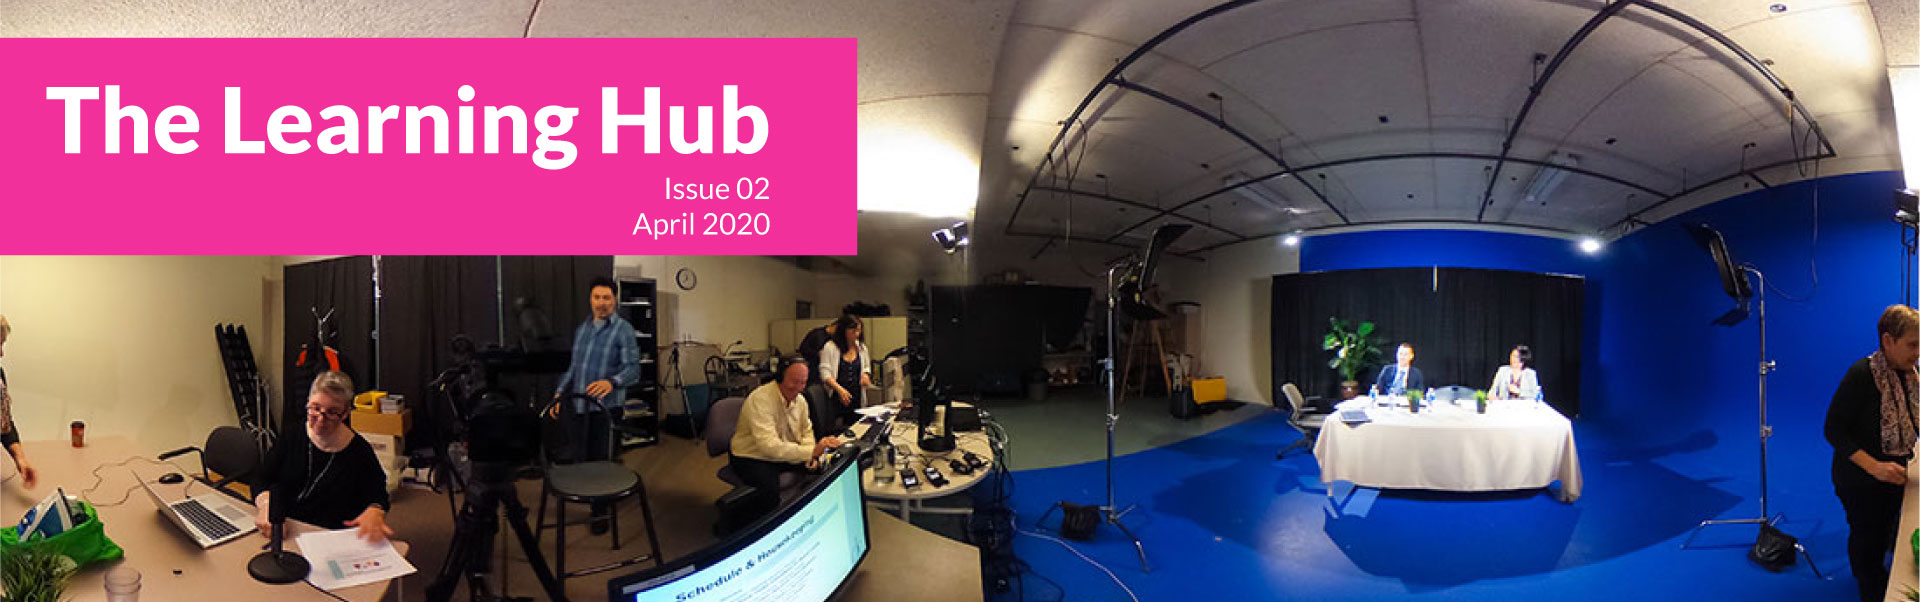 The Learning Hub: Issue 02